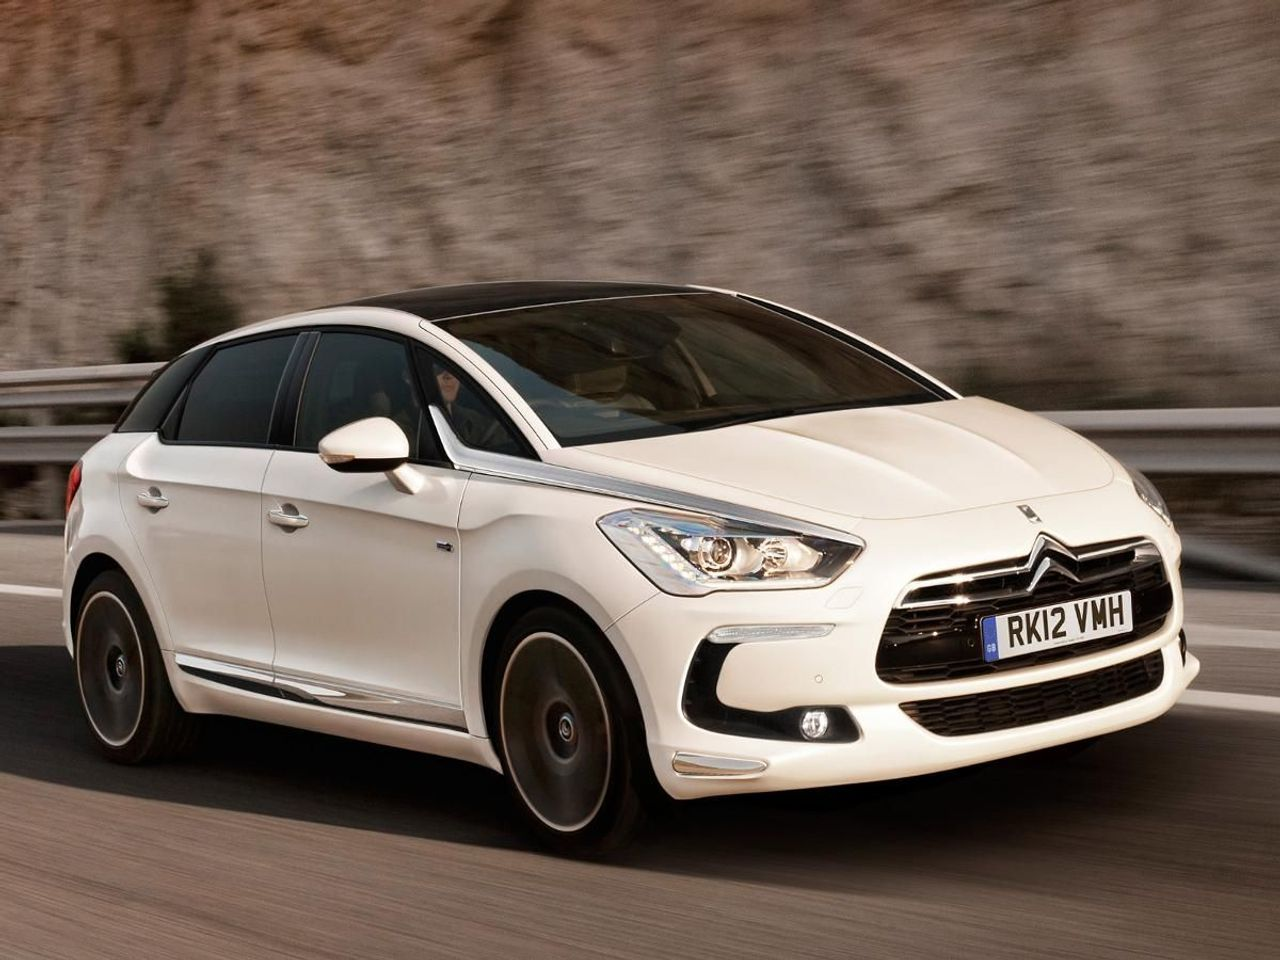 citroen ds5 hatchback 2011 review auto trader uk. Black Bedroom Furniture Sets. Home Design Ideas